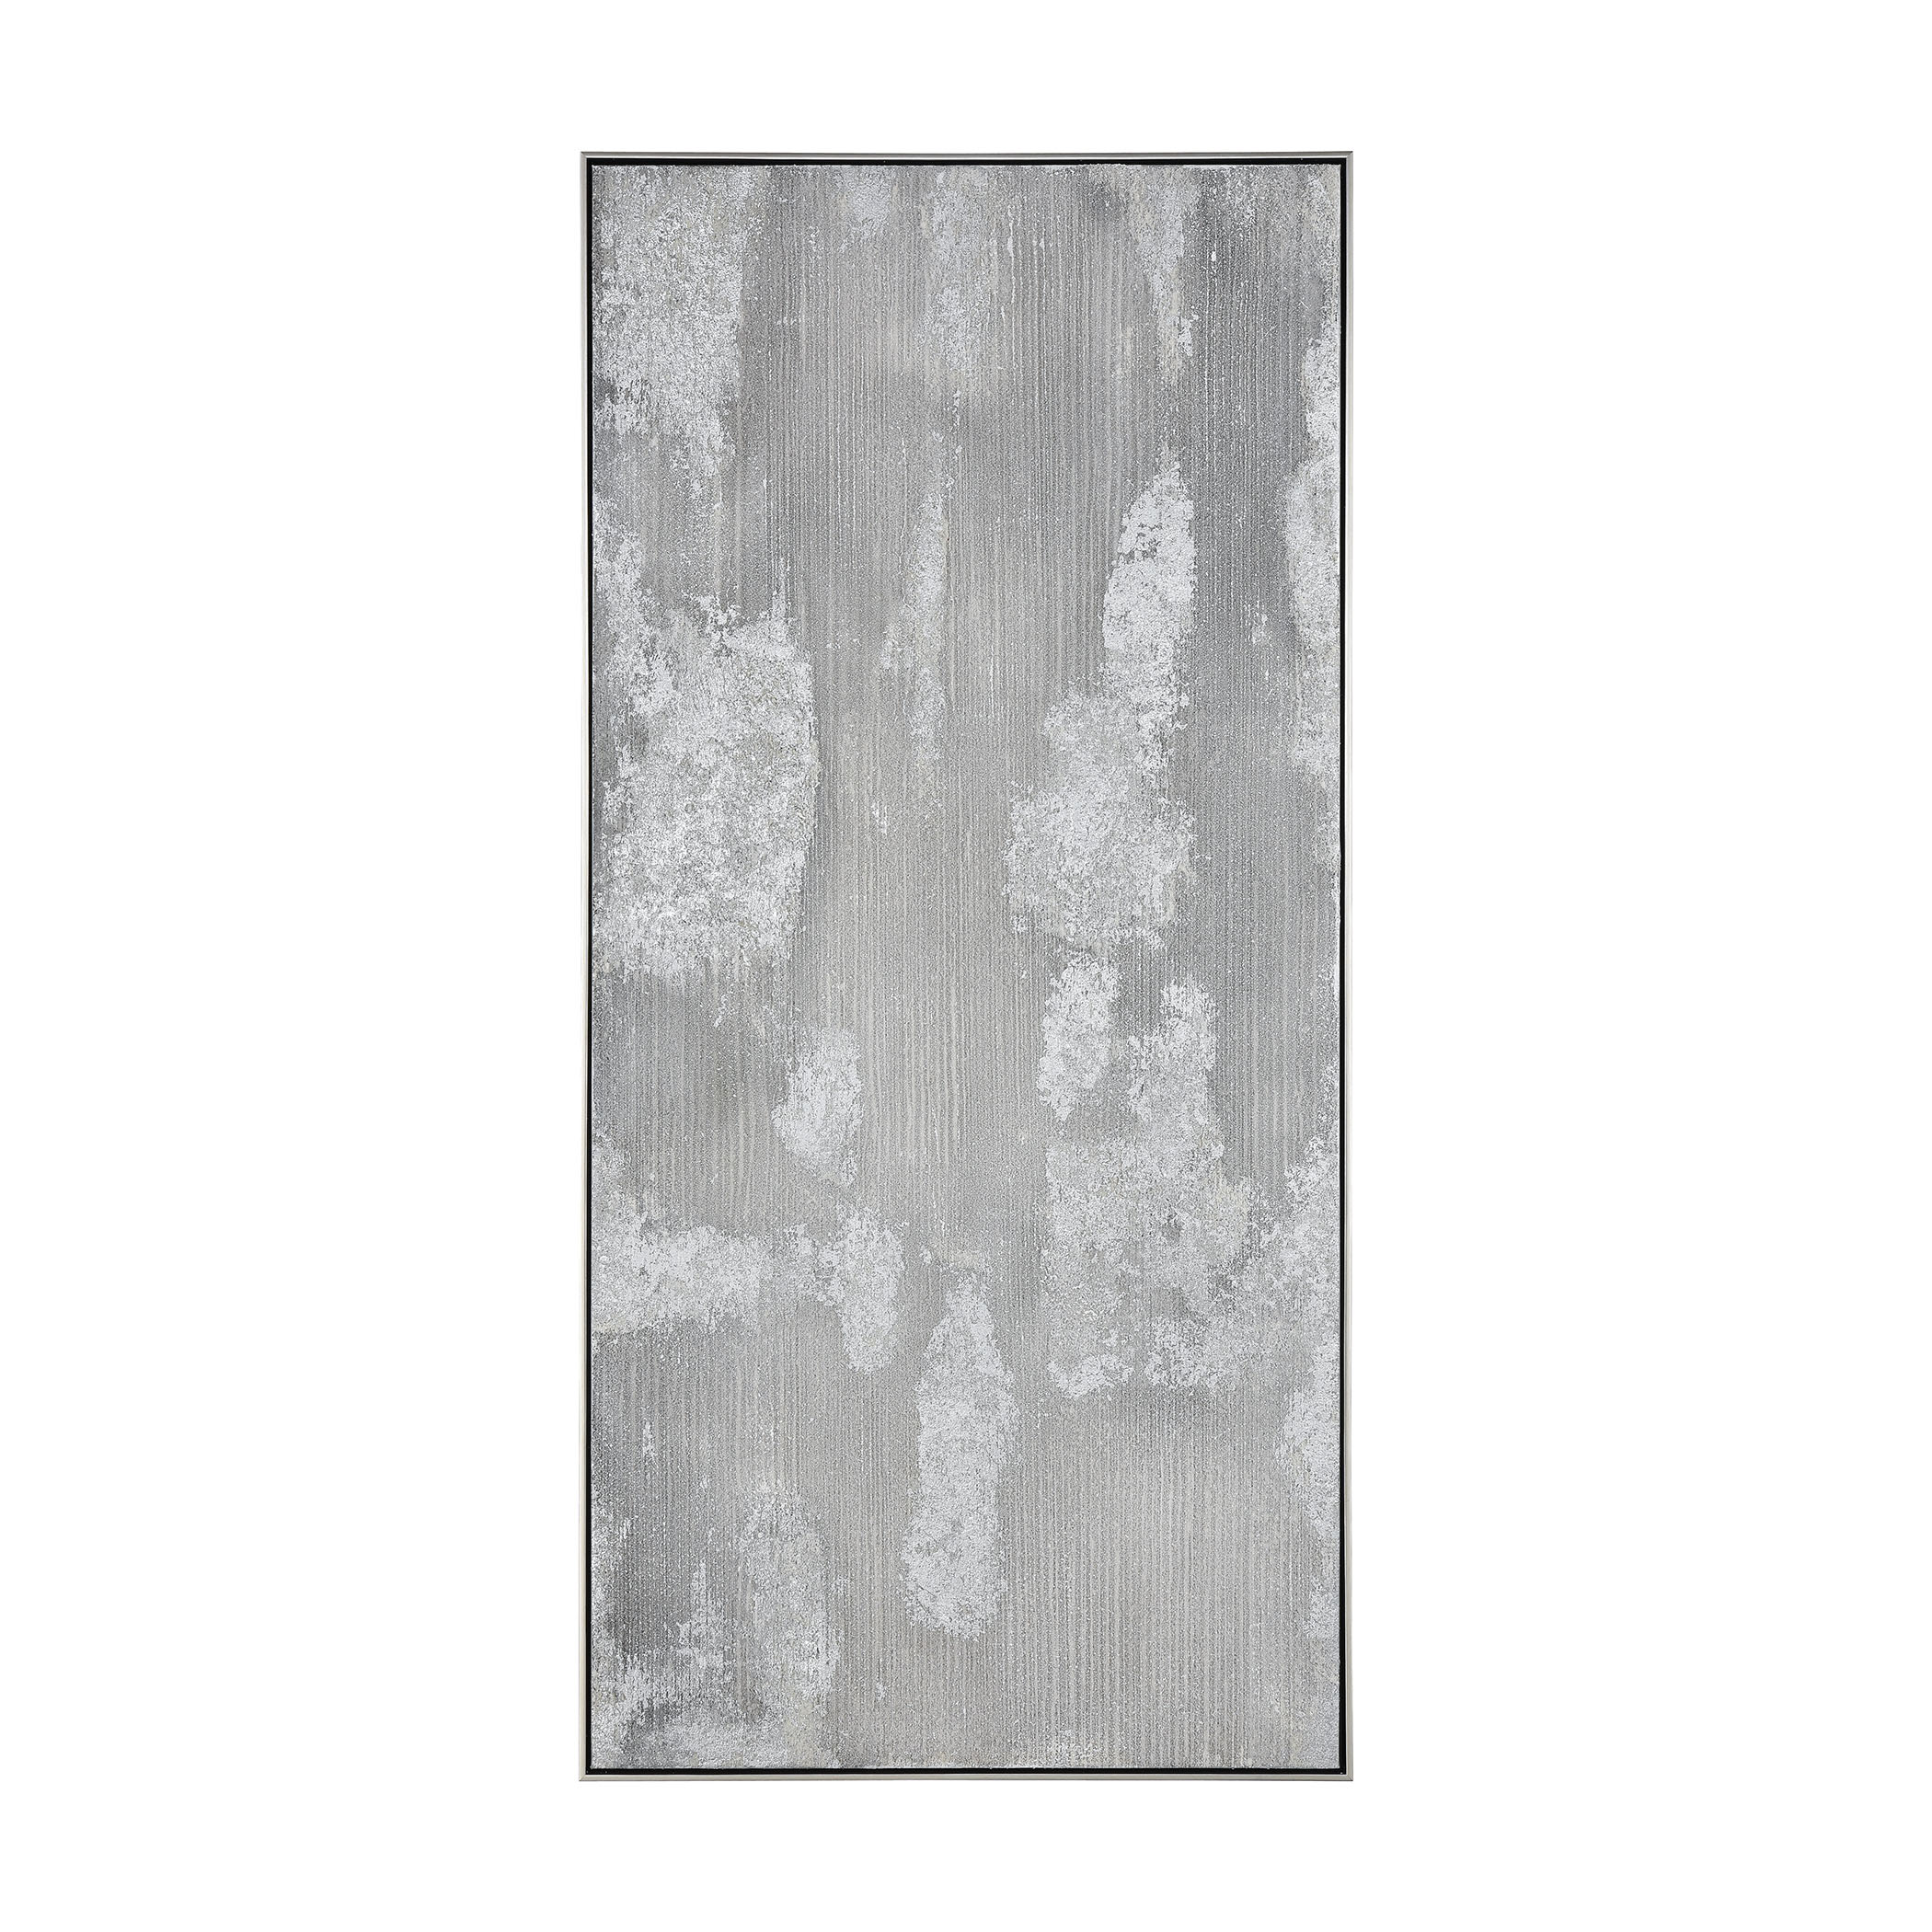 Saris II Wall Decor in White and Grey | Elk Home